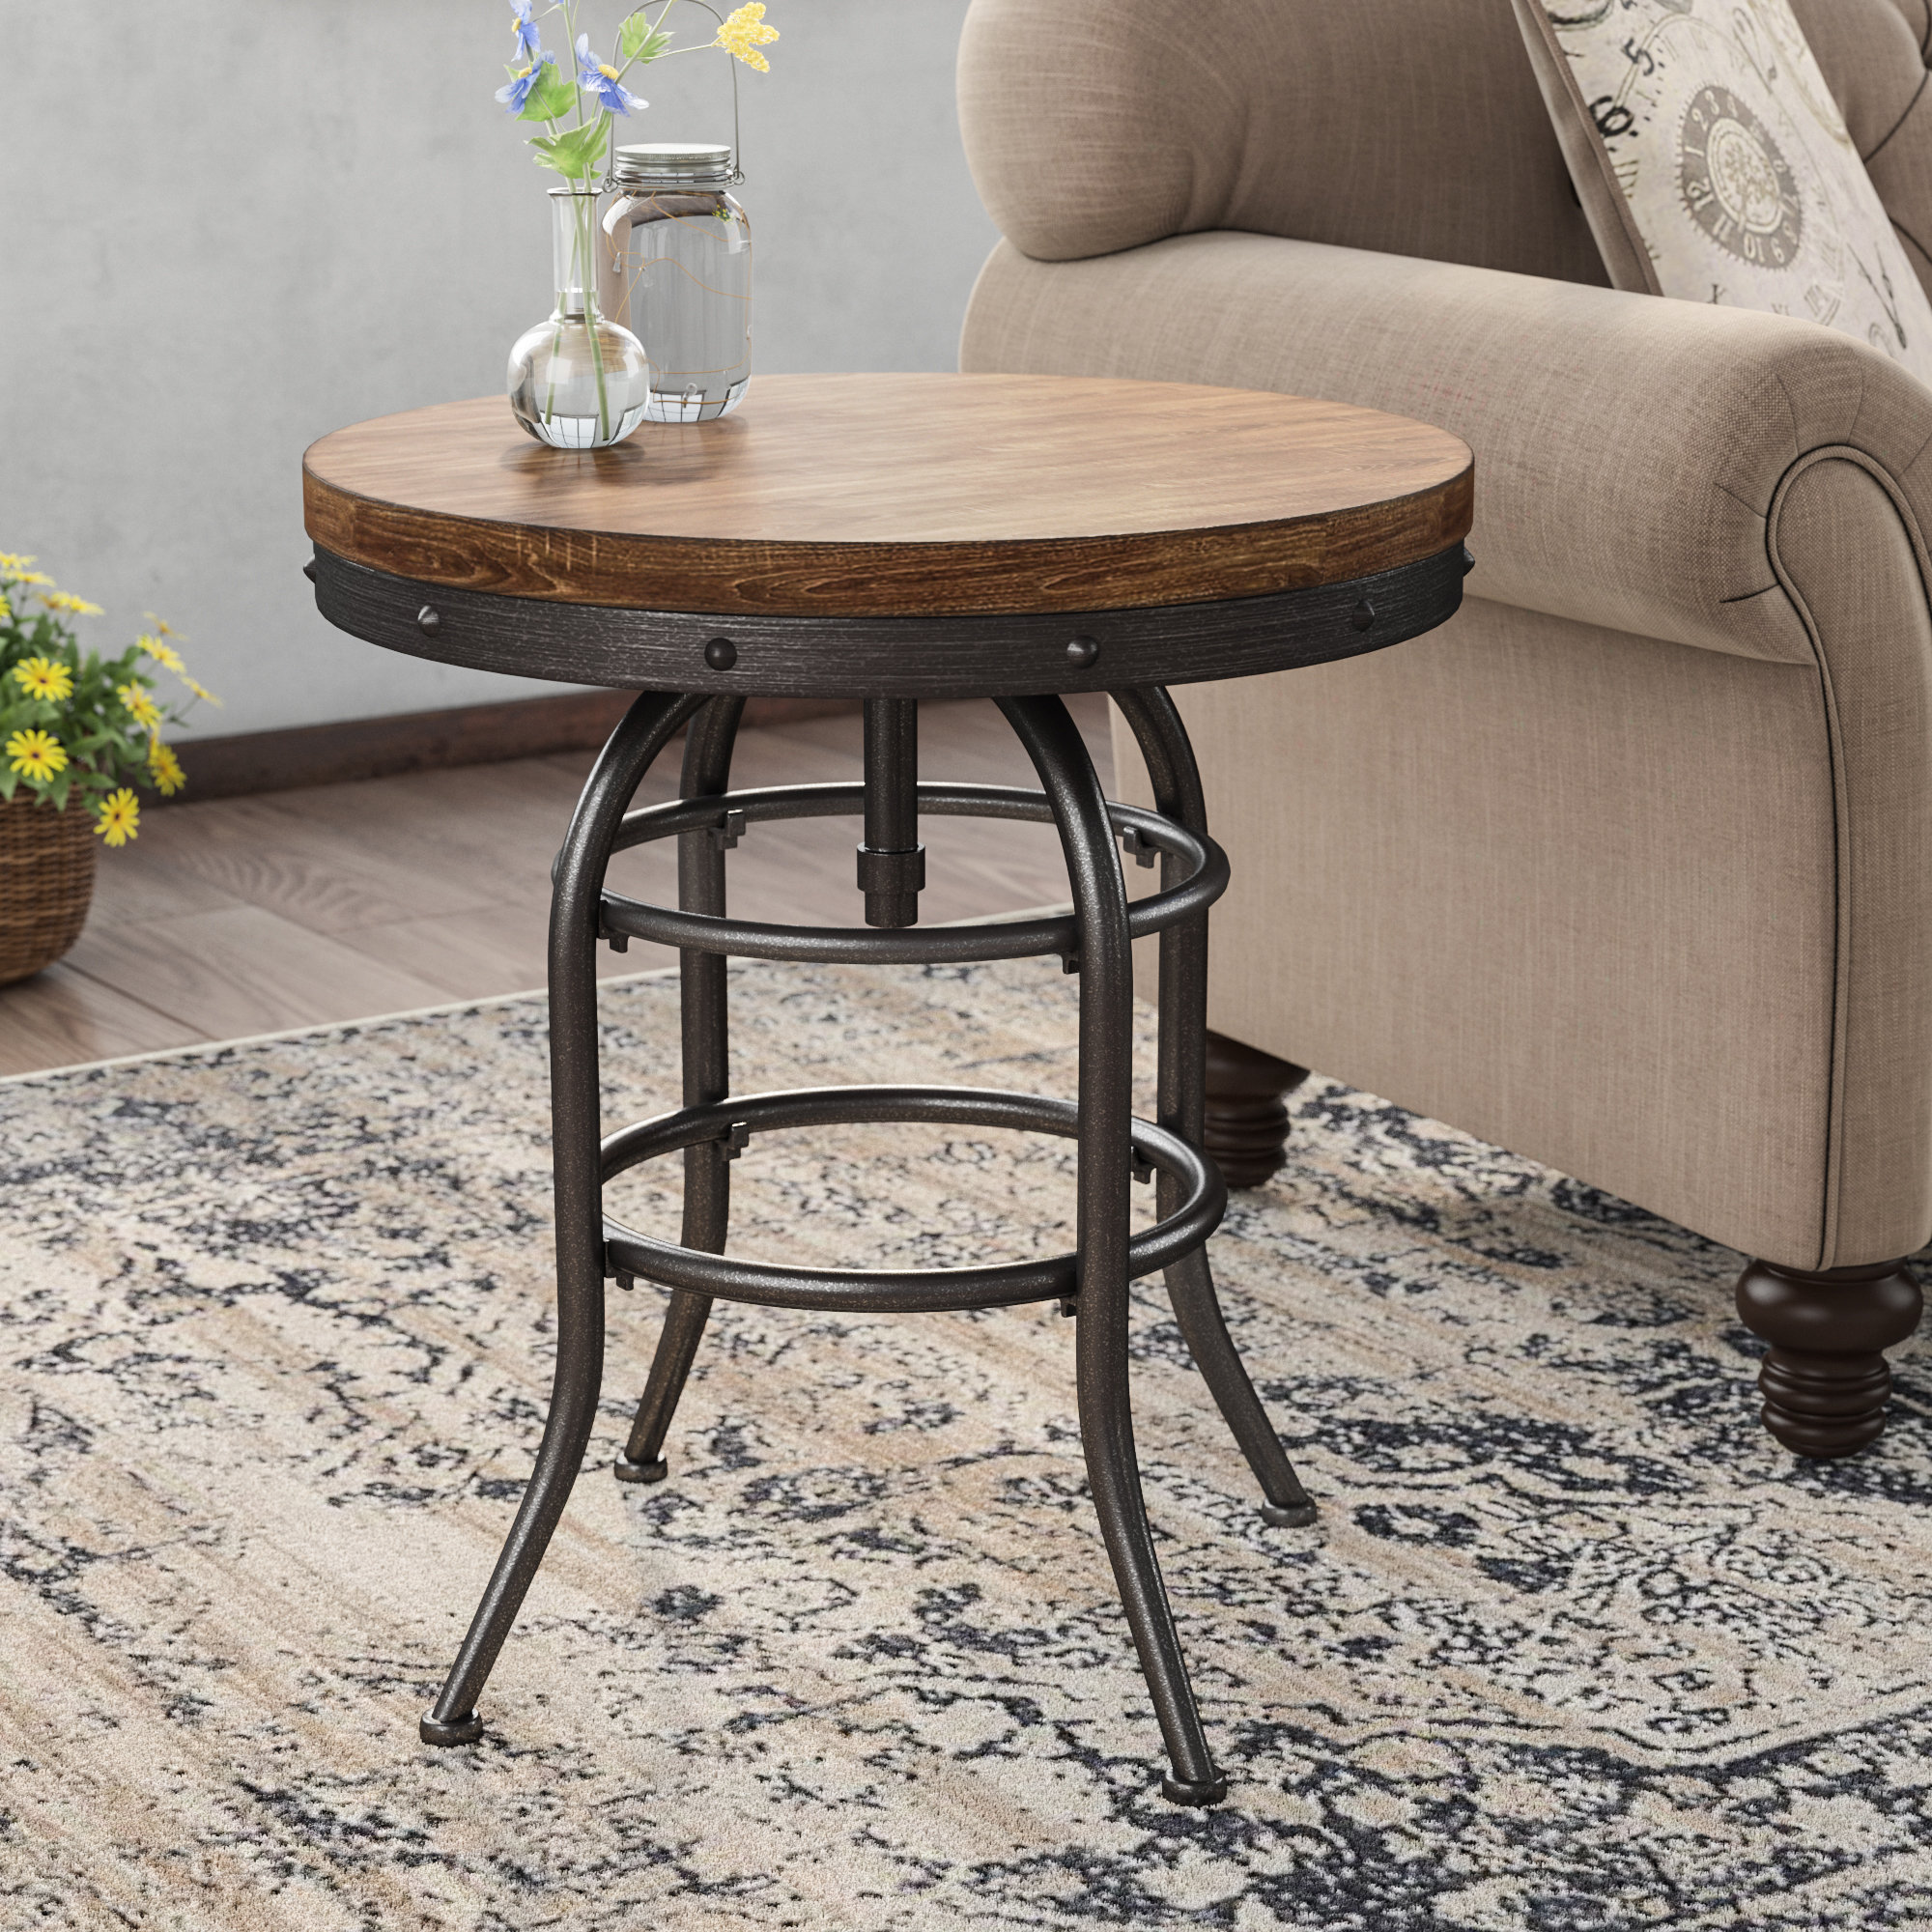 laurel foundry modern farmhouse likens end table reviews style accent round coffee with shelf small wood dining and chairs ikea wall desk combo inexpensive tables kitchen club